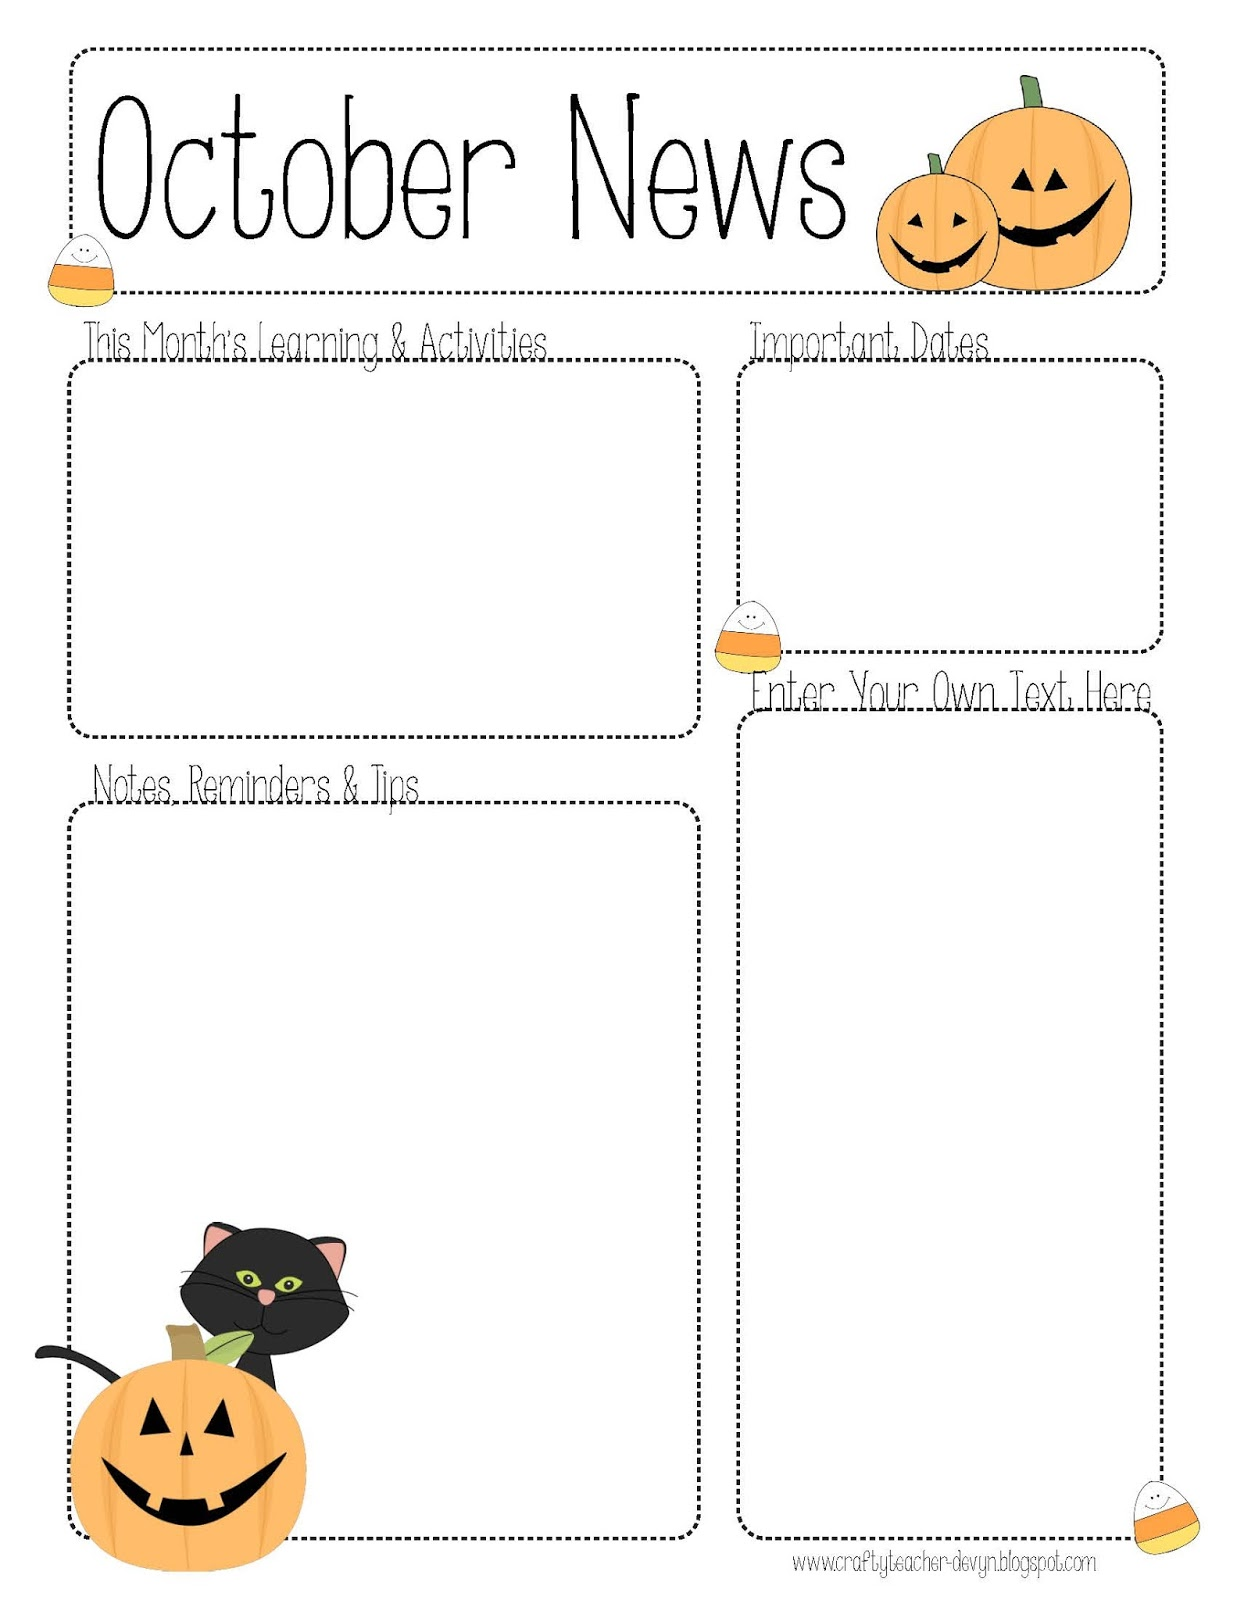 October Newsletter Template